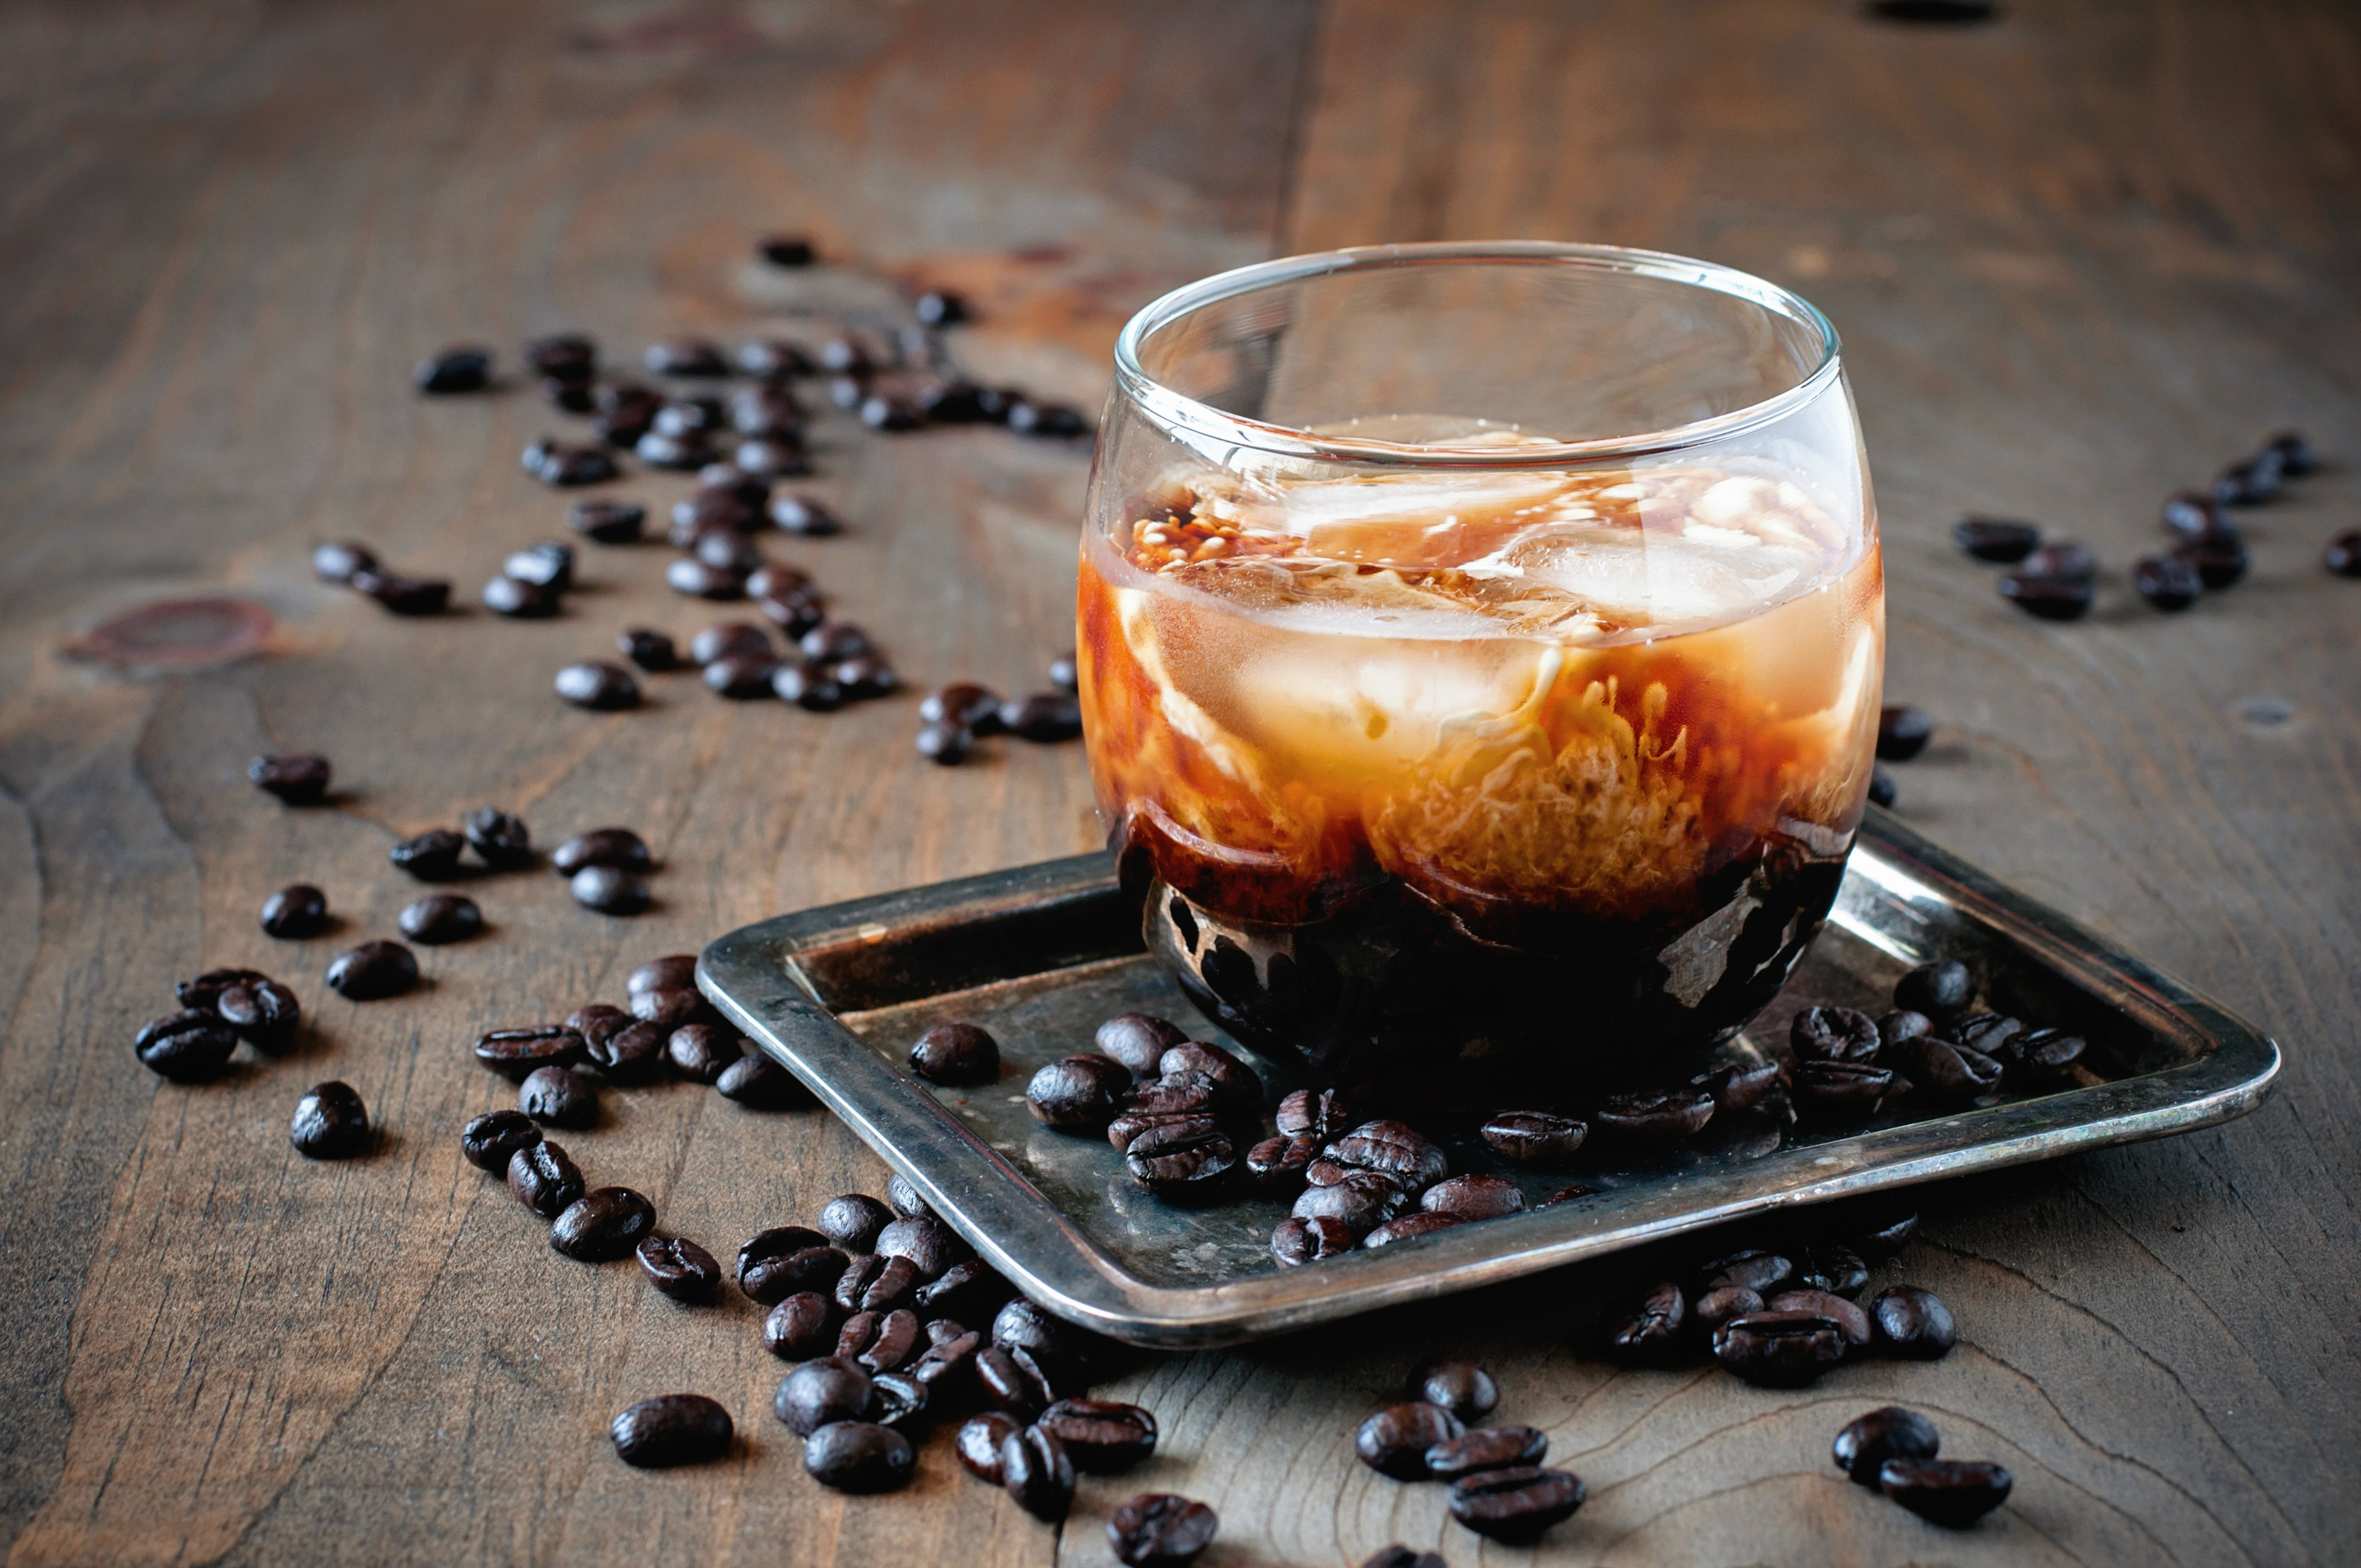 Coffee Cocktails - Next Food Trends